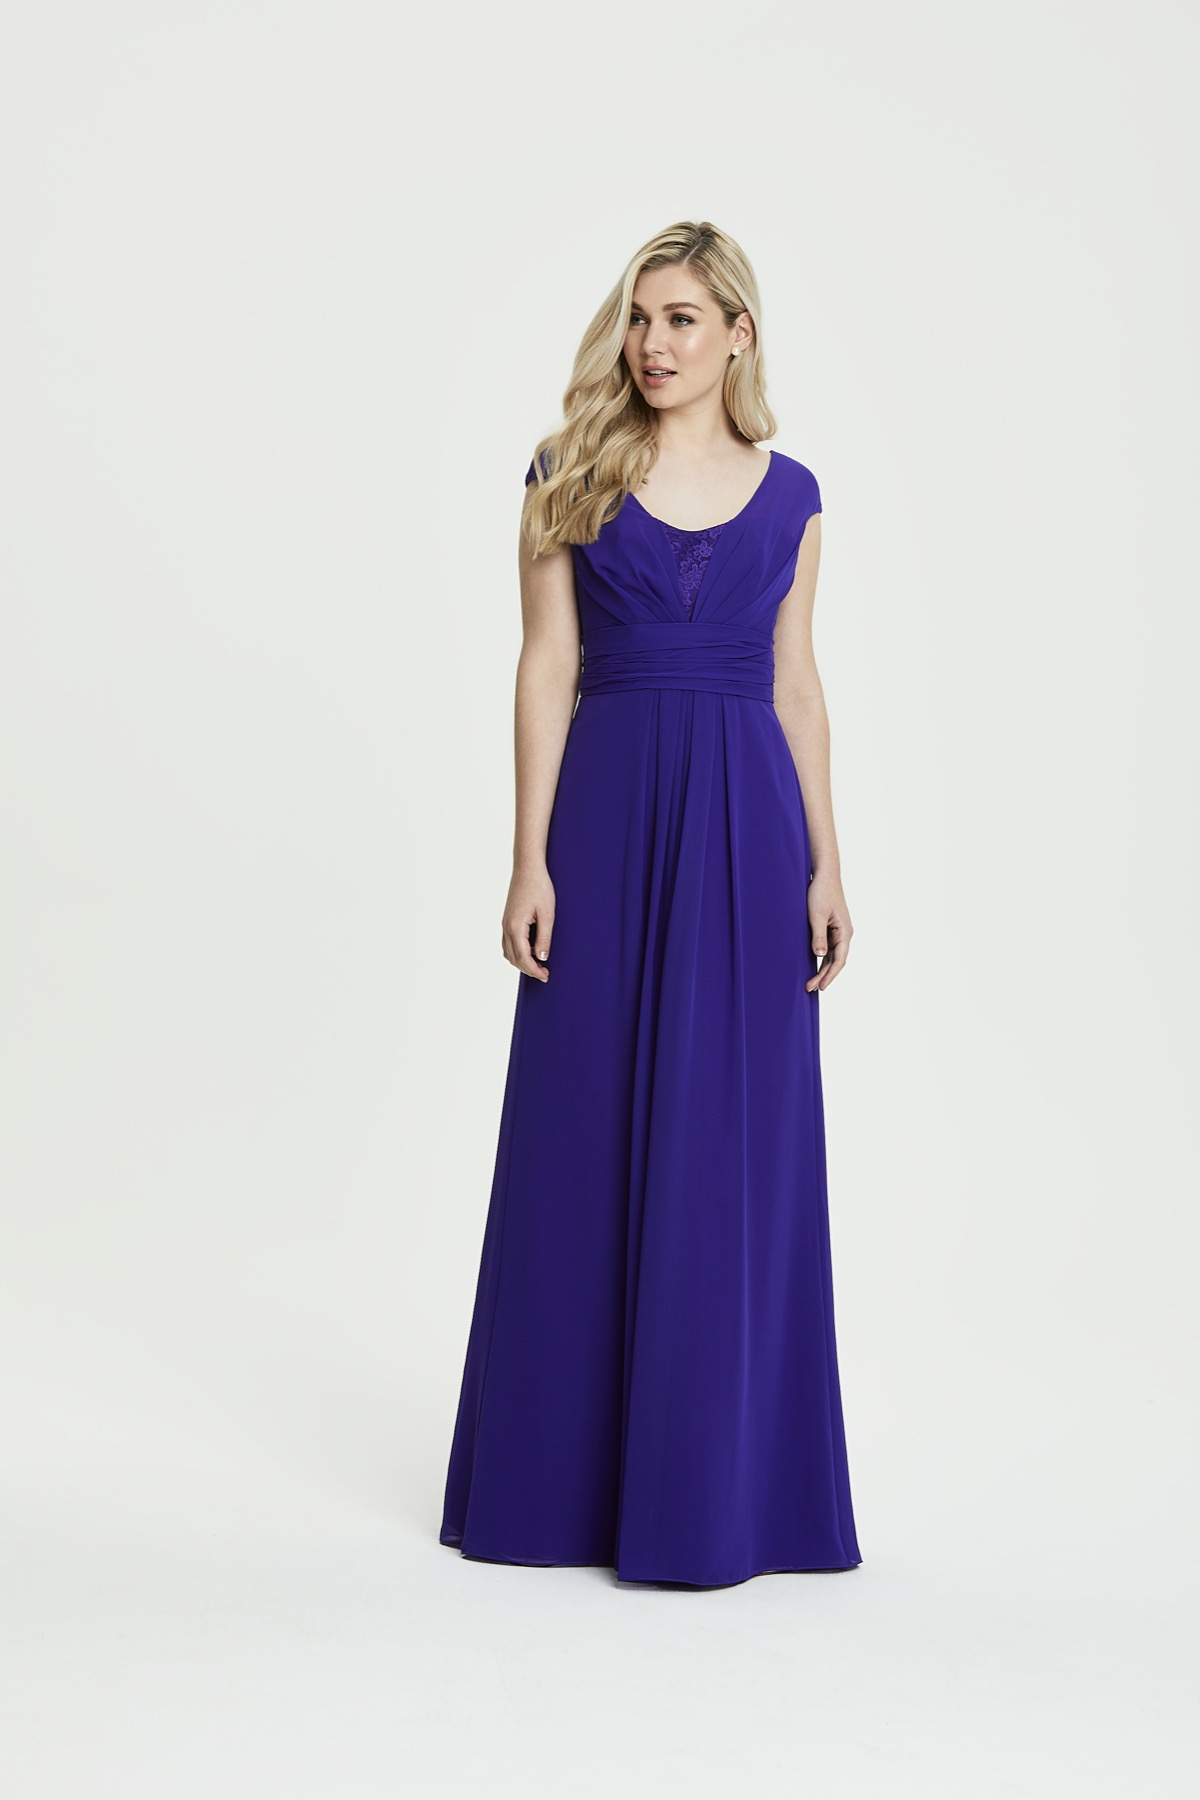 Bridesmaid – Pirouette The Collection